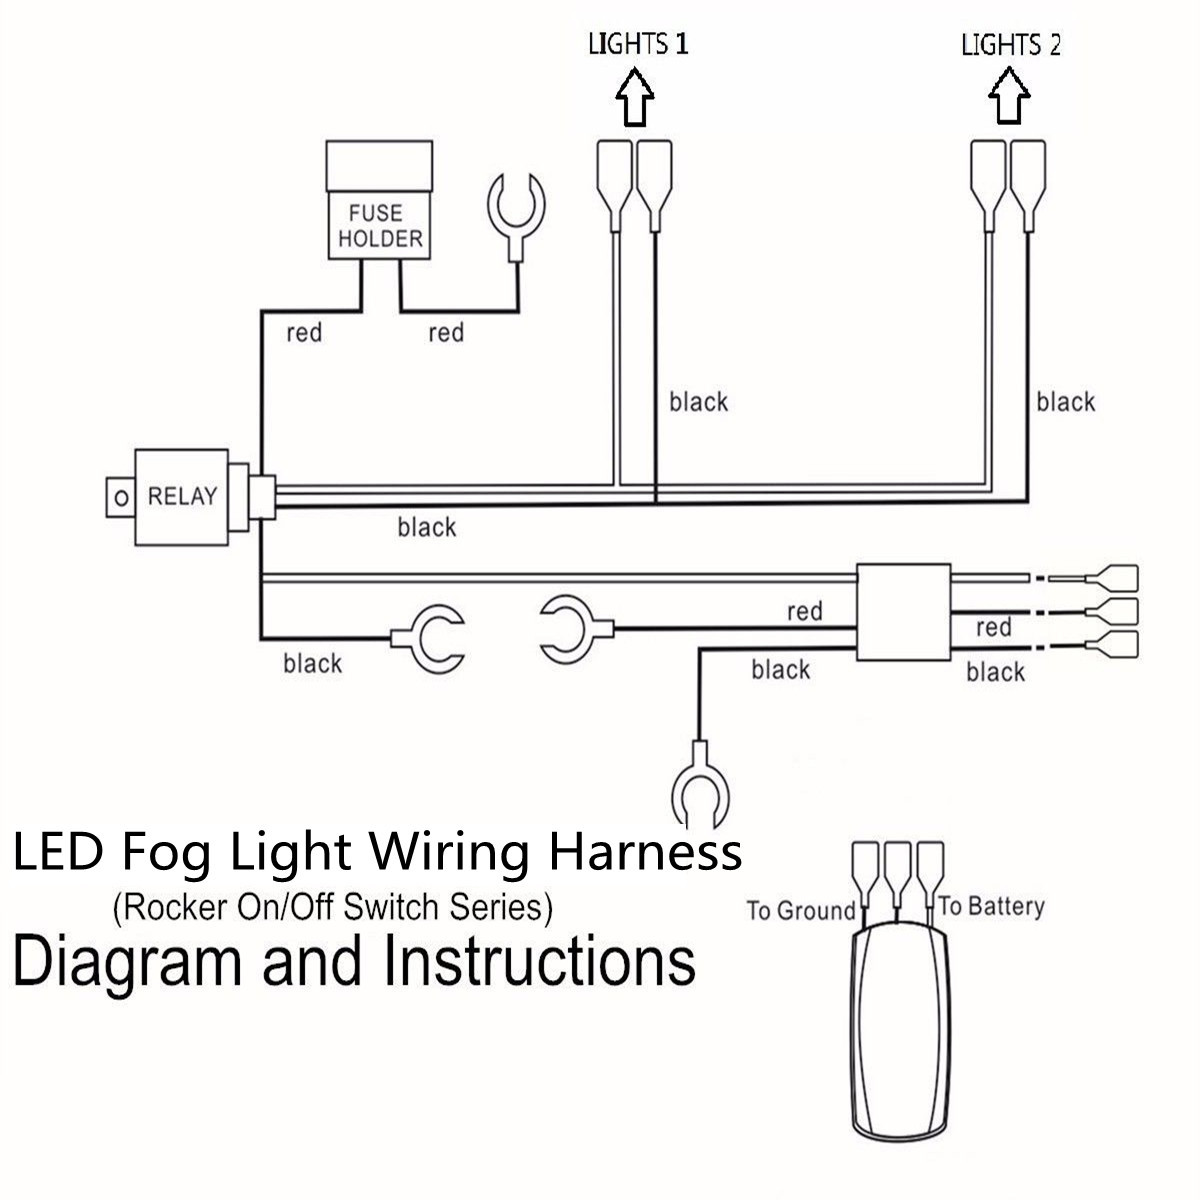 kc lights wiring diagram solidfonts harness diagram click image for larger version kc hilites wiring instructions solidfonts